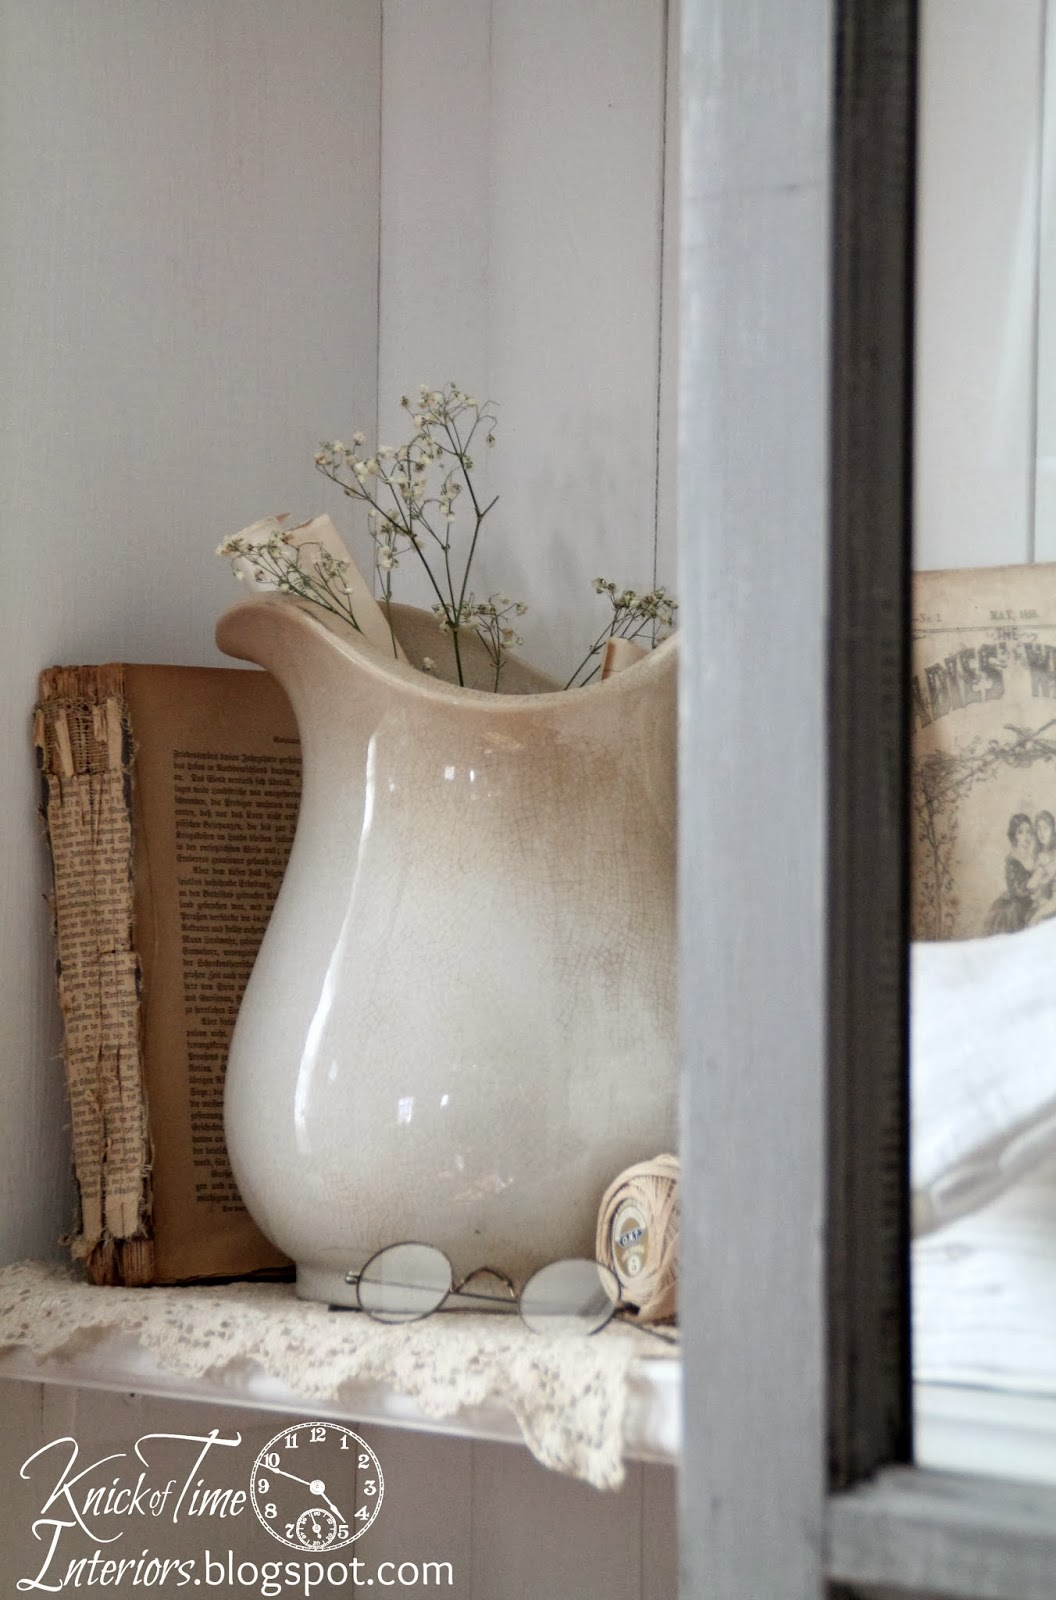 Ironstone Pitcher and Antique Eyeglasses with Repurposed Windows into DIY Antique Cupboard Cabinet via Knick of Time